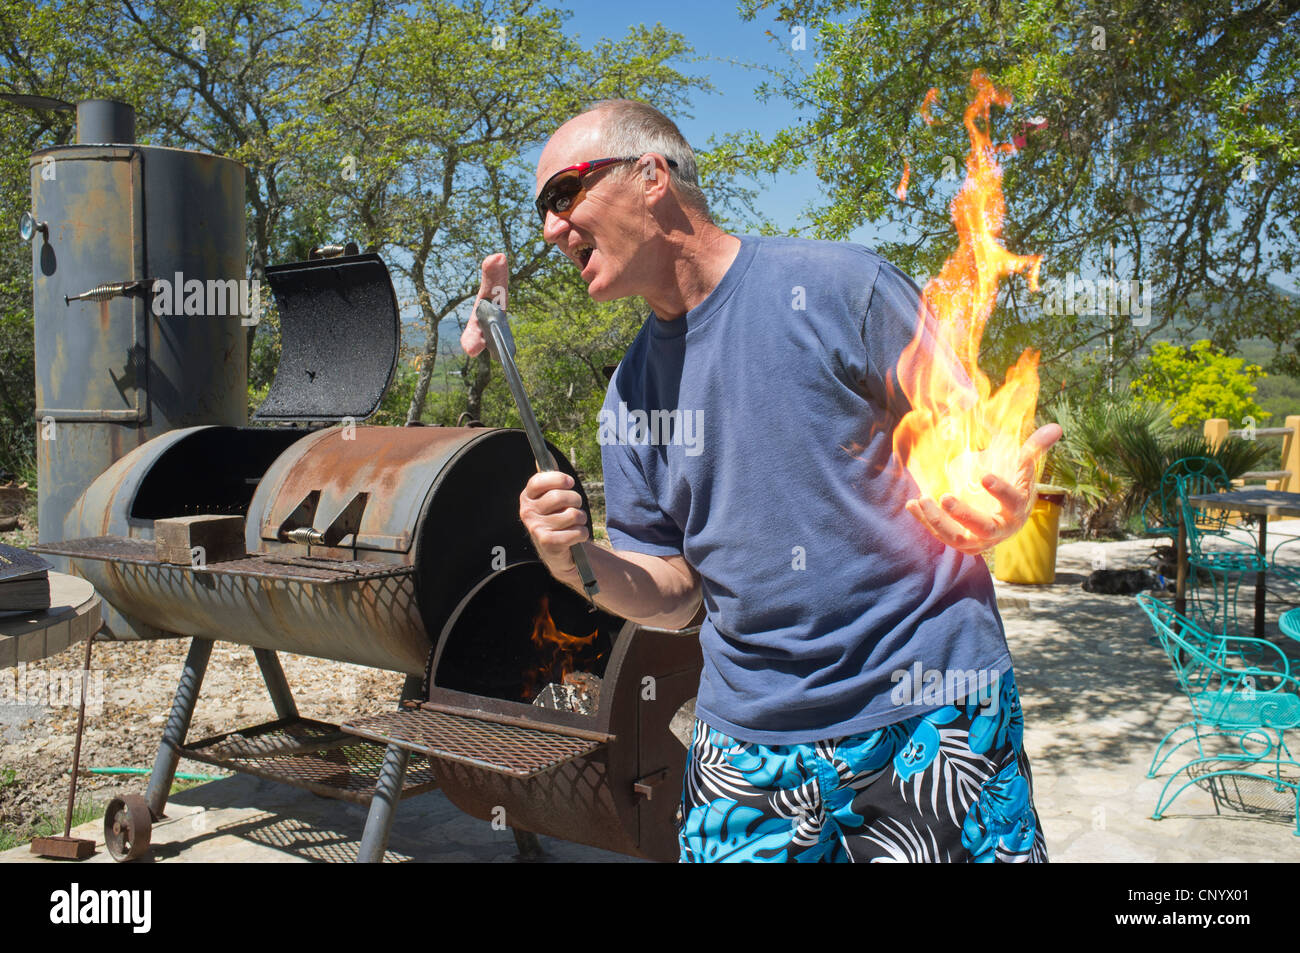 Backyard Bbq Composite Of Man In Shorts Playing With Fire